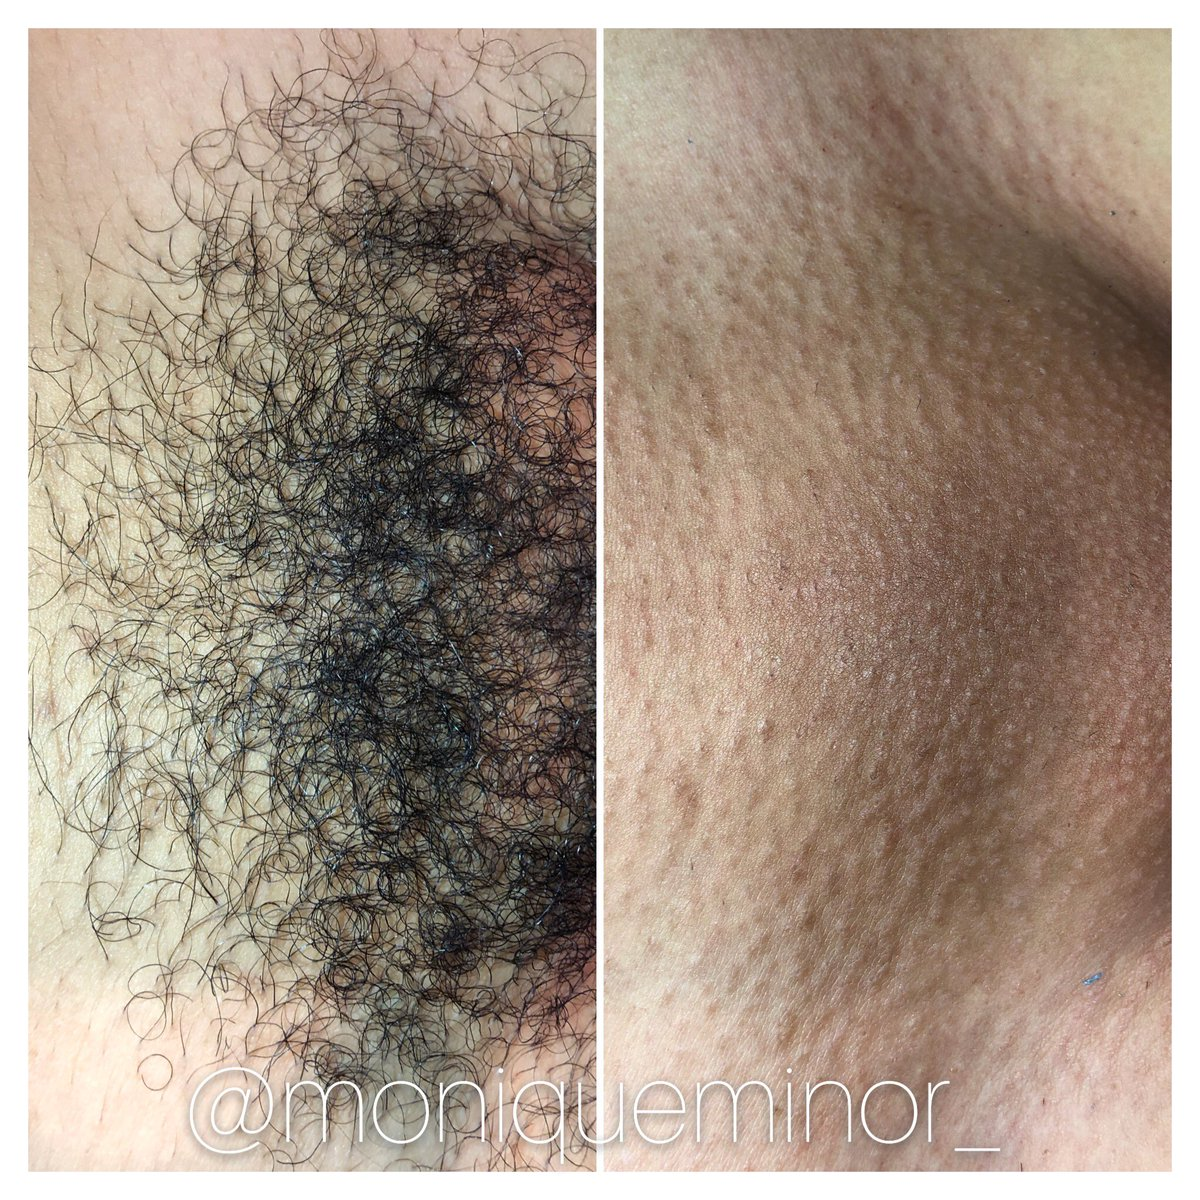 Monique Minor On Twitter Before And After Brazilian Wax What A